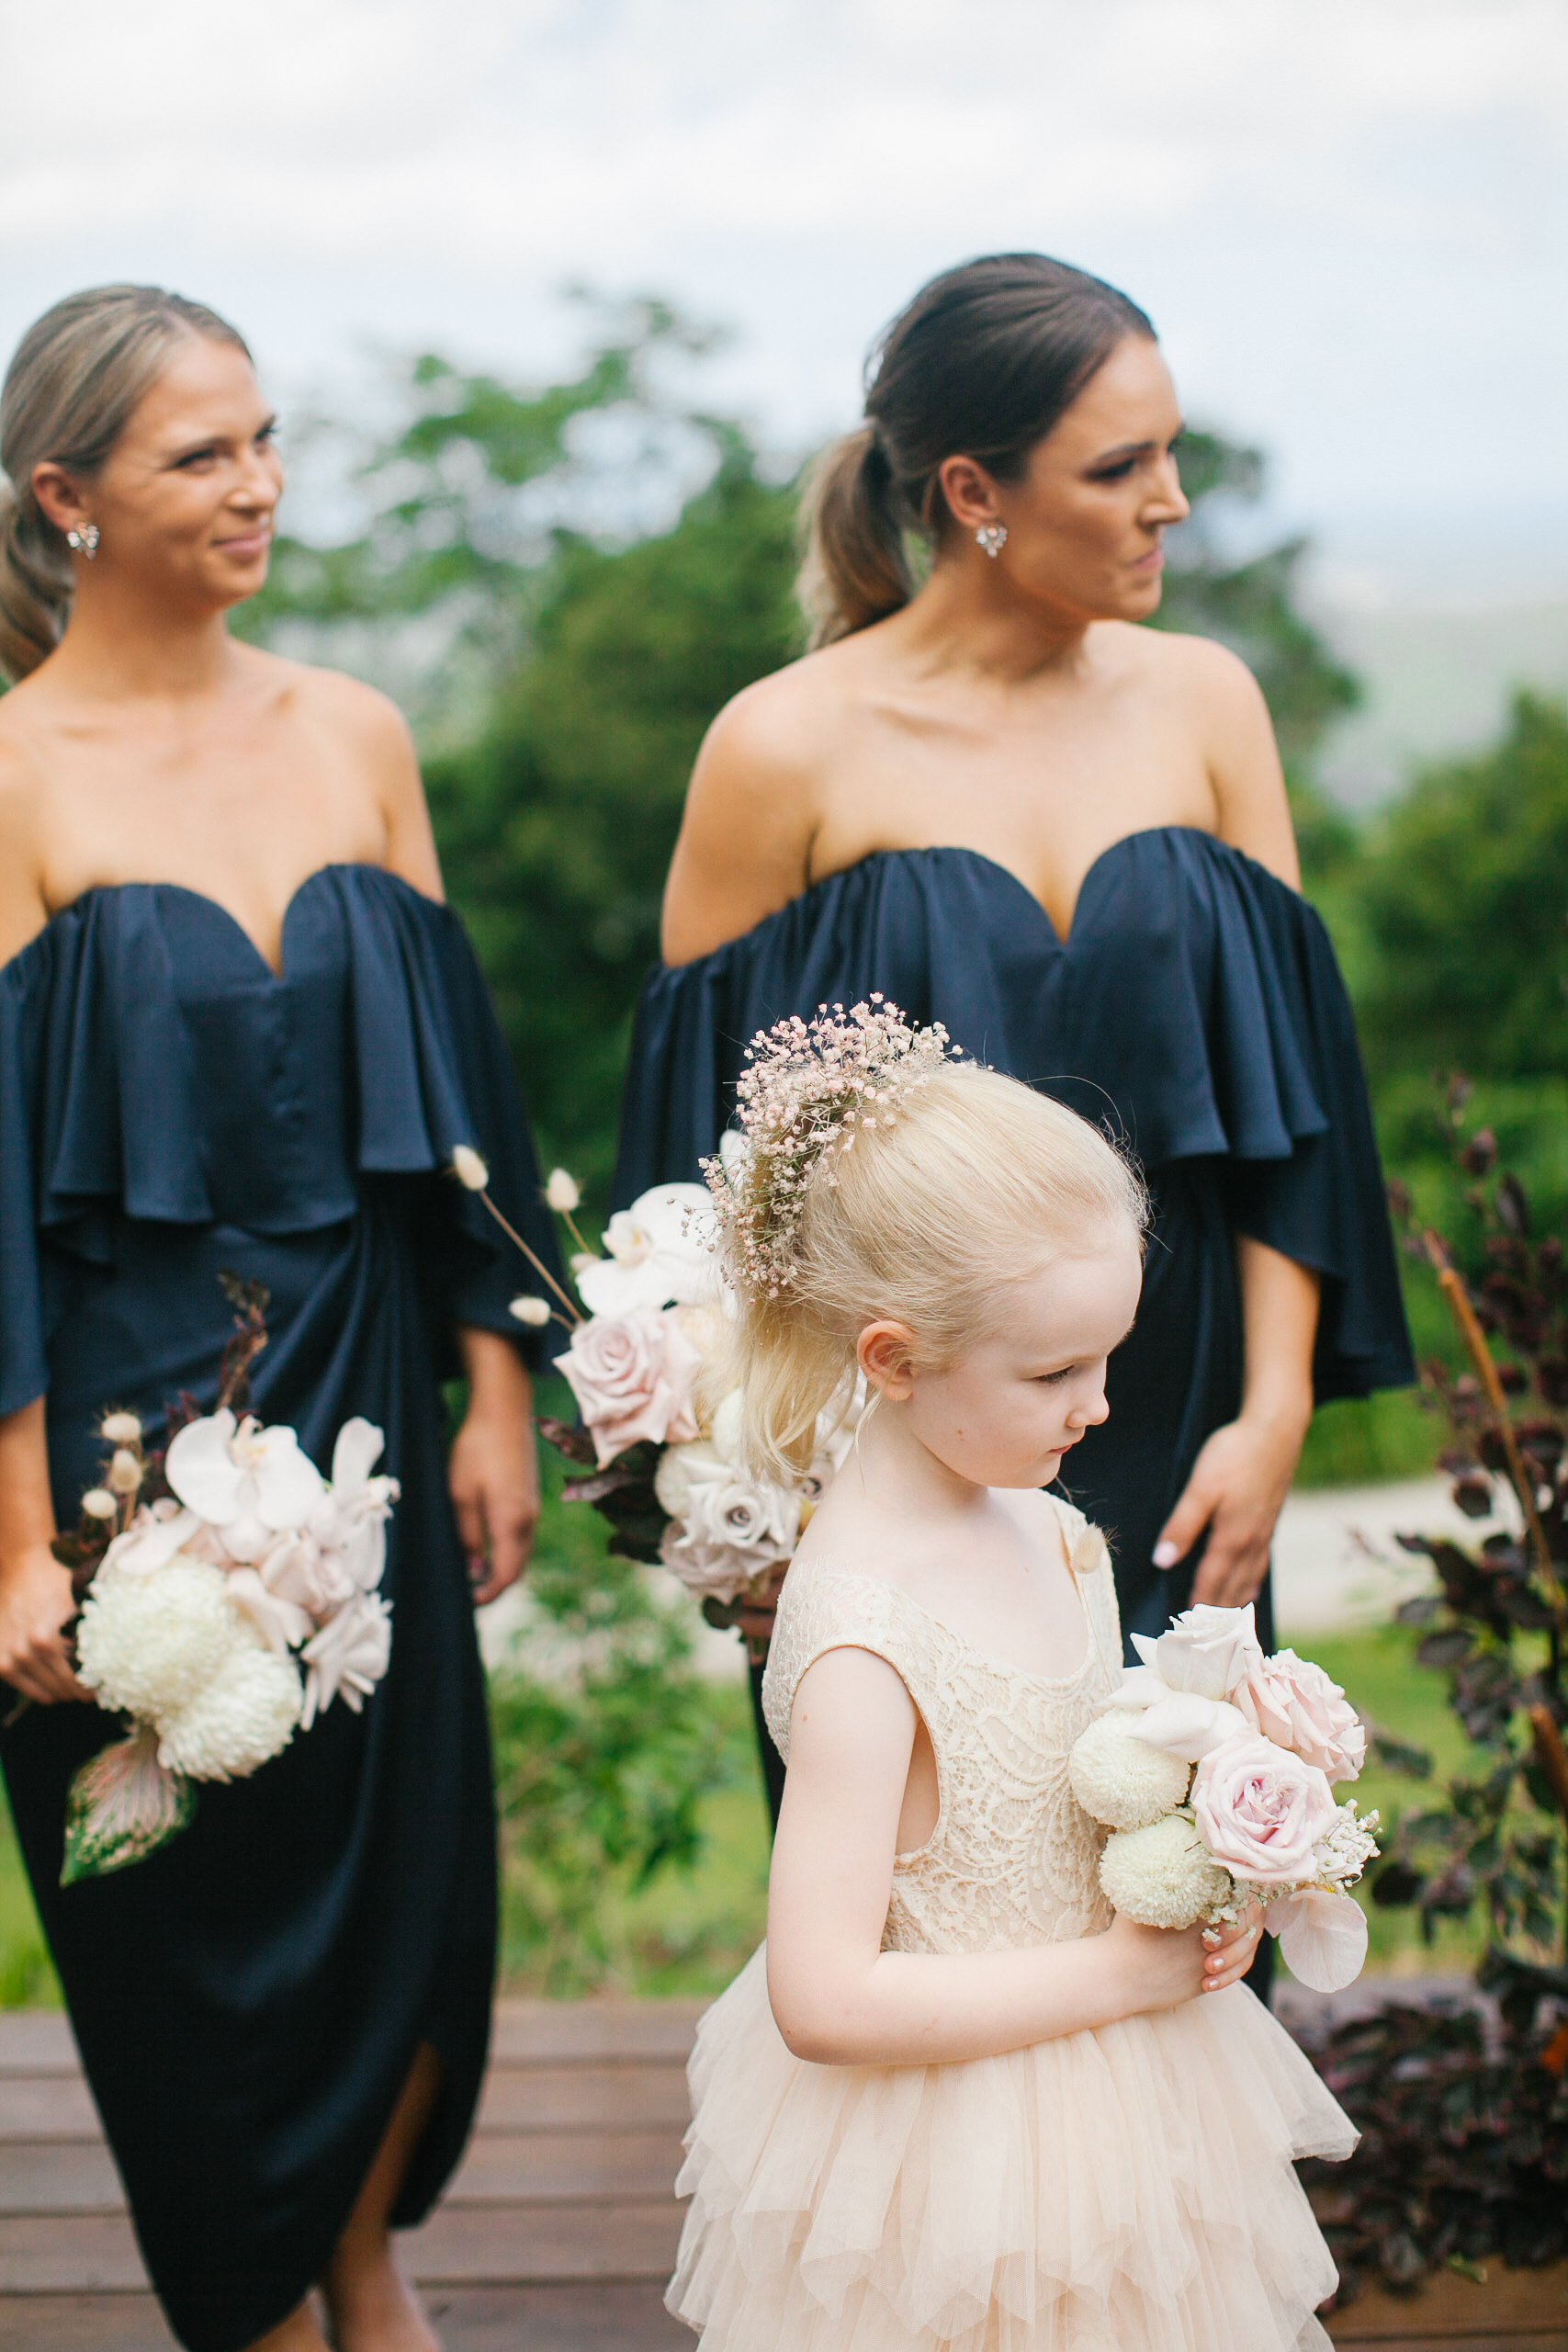 Bloodwood Botanica | Bridesmaids flowergirl byron bay wedding flowers